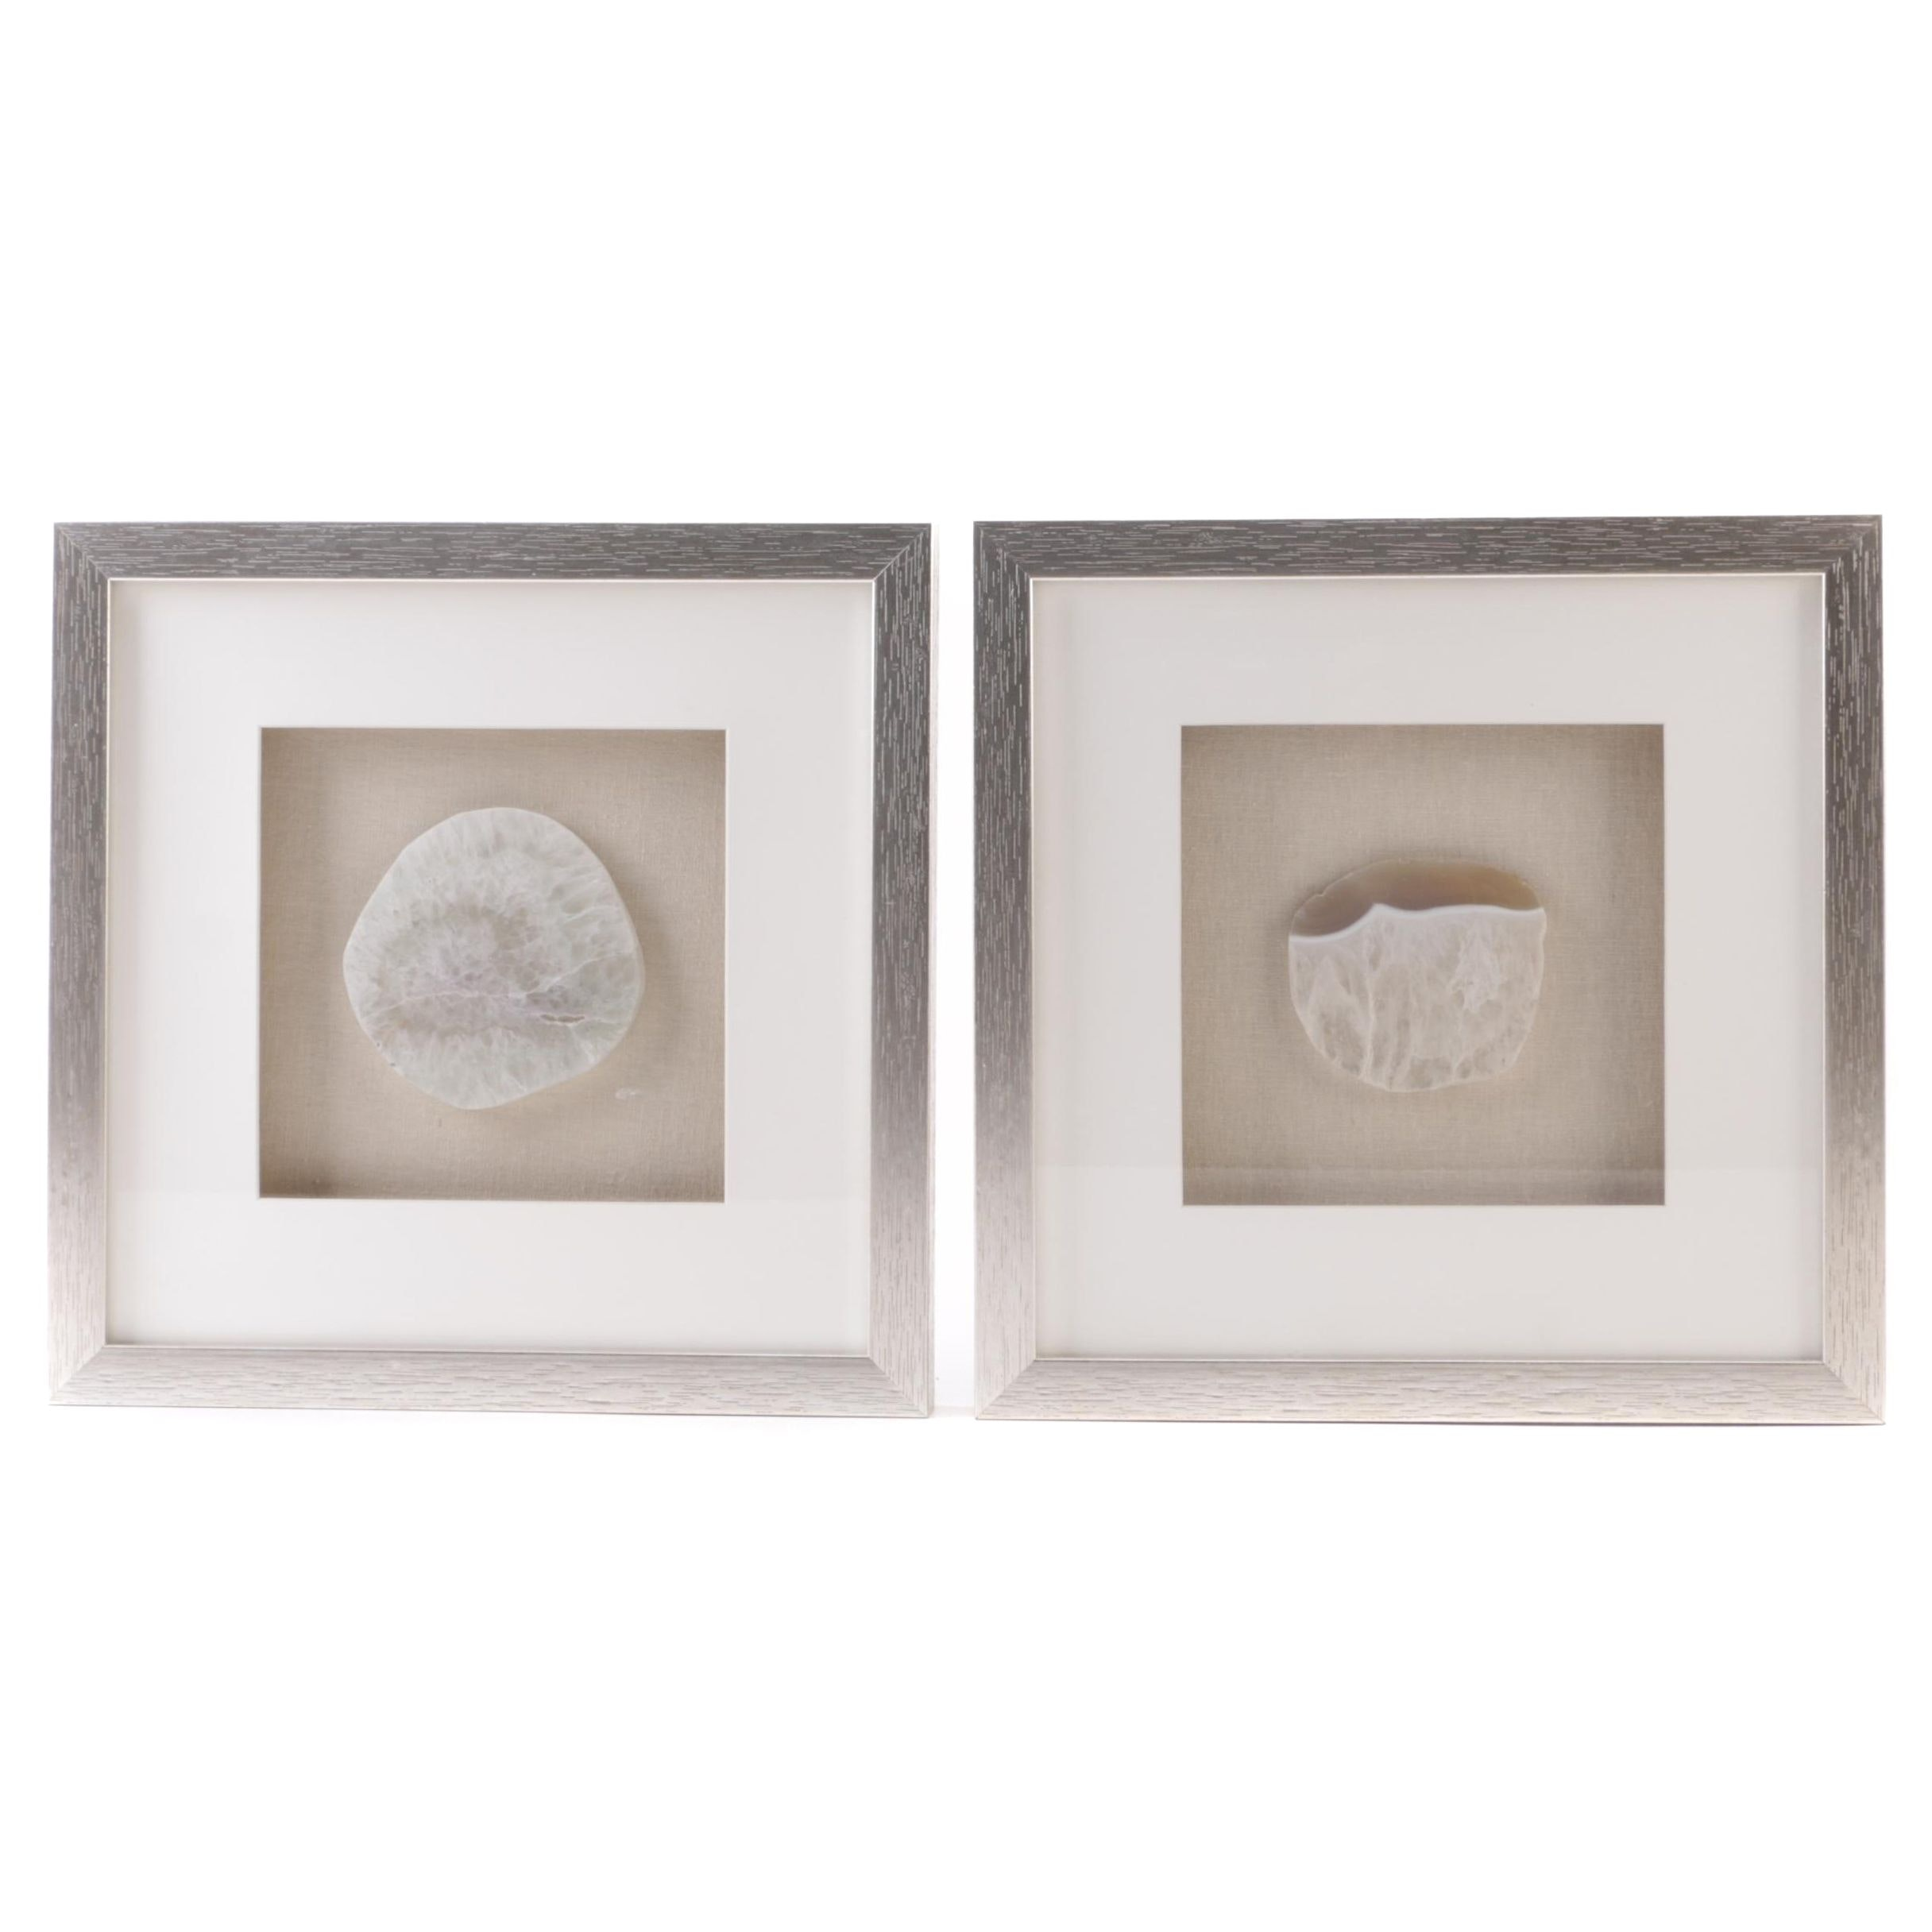 Framed Quartz Specimens